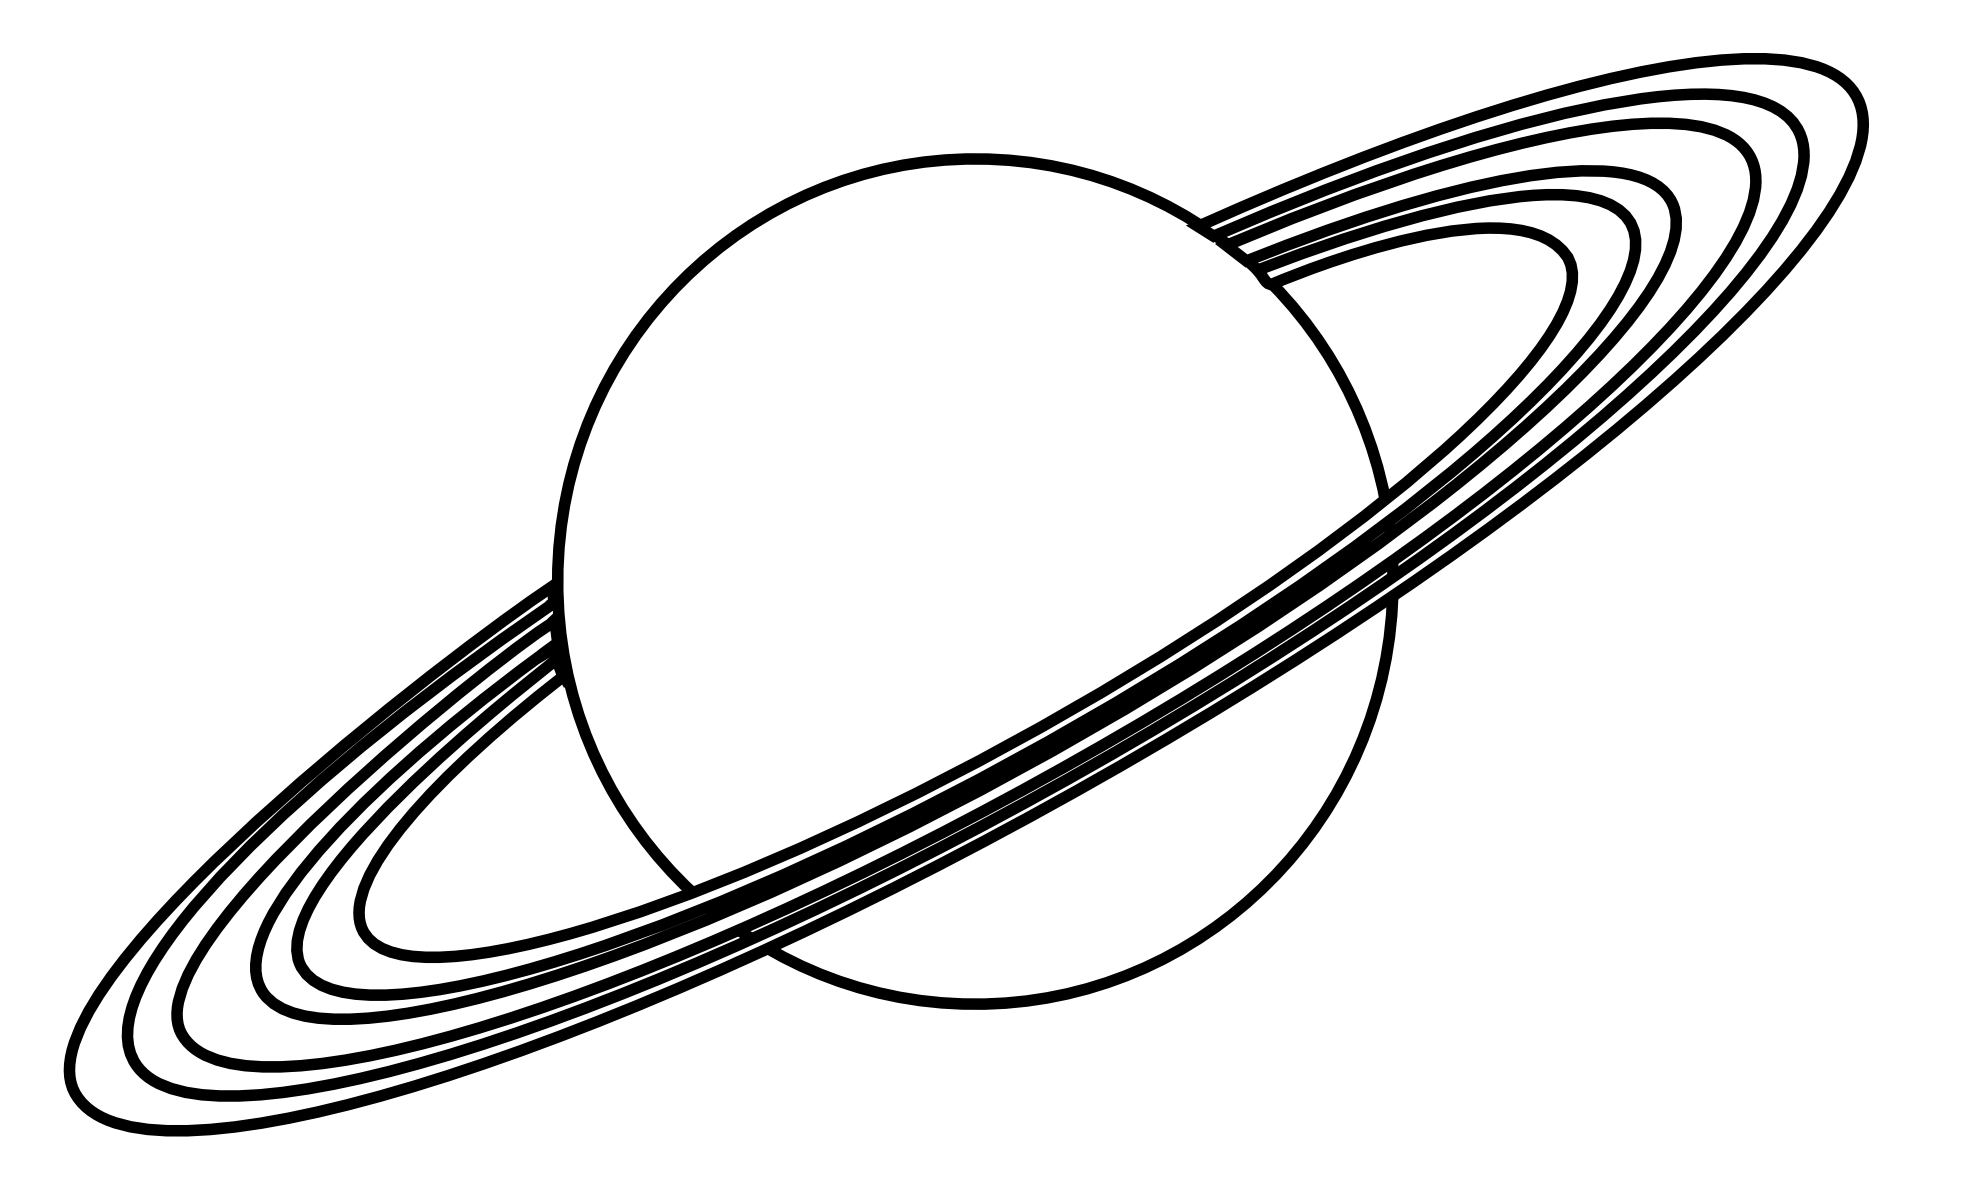 Coloring pages democraciaejustica clipground. Planet clipart saturn